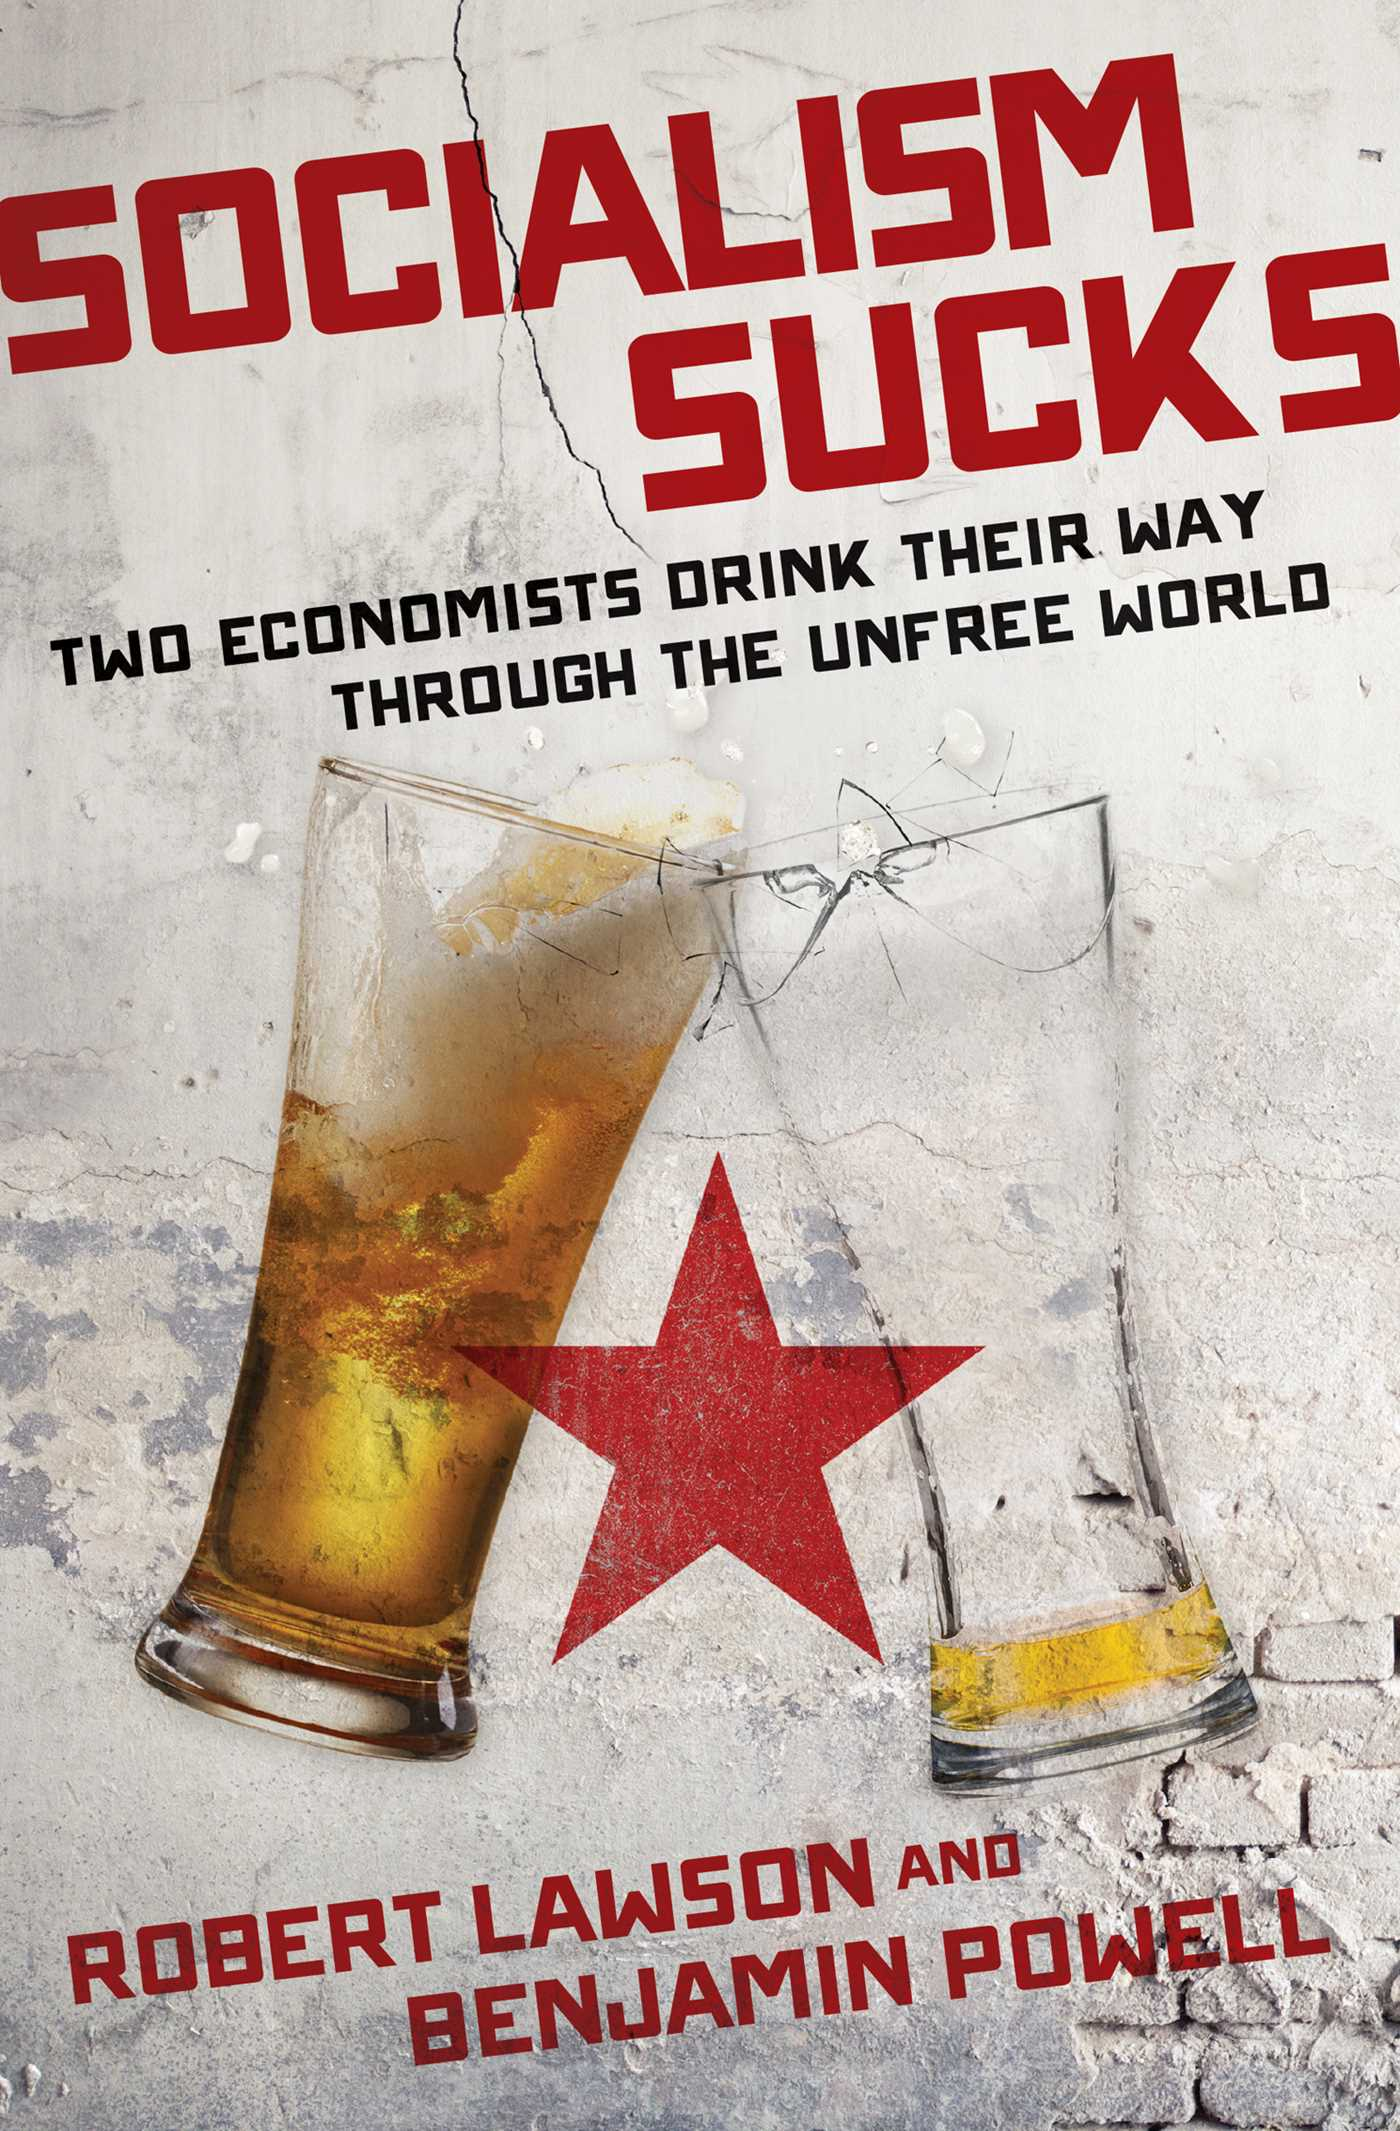 Two Economists Drink Their Way Through the Unfree World  -  Robert A. Lawson, Benjamin Powell